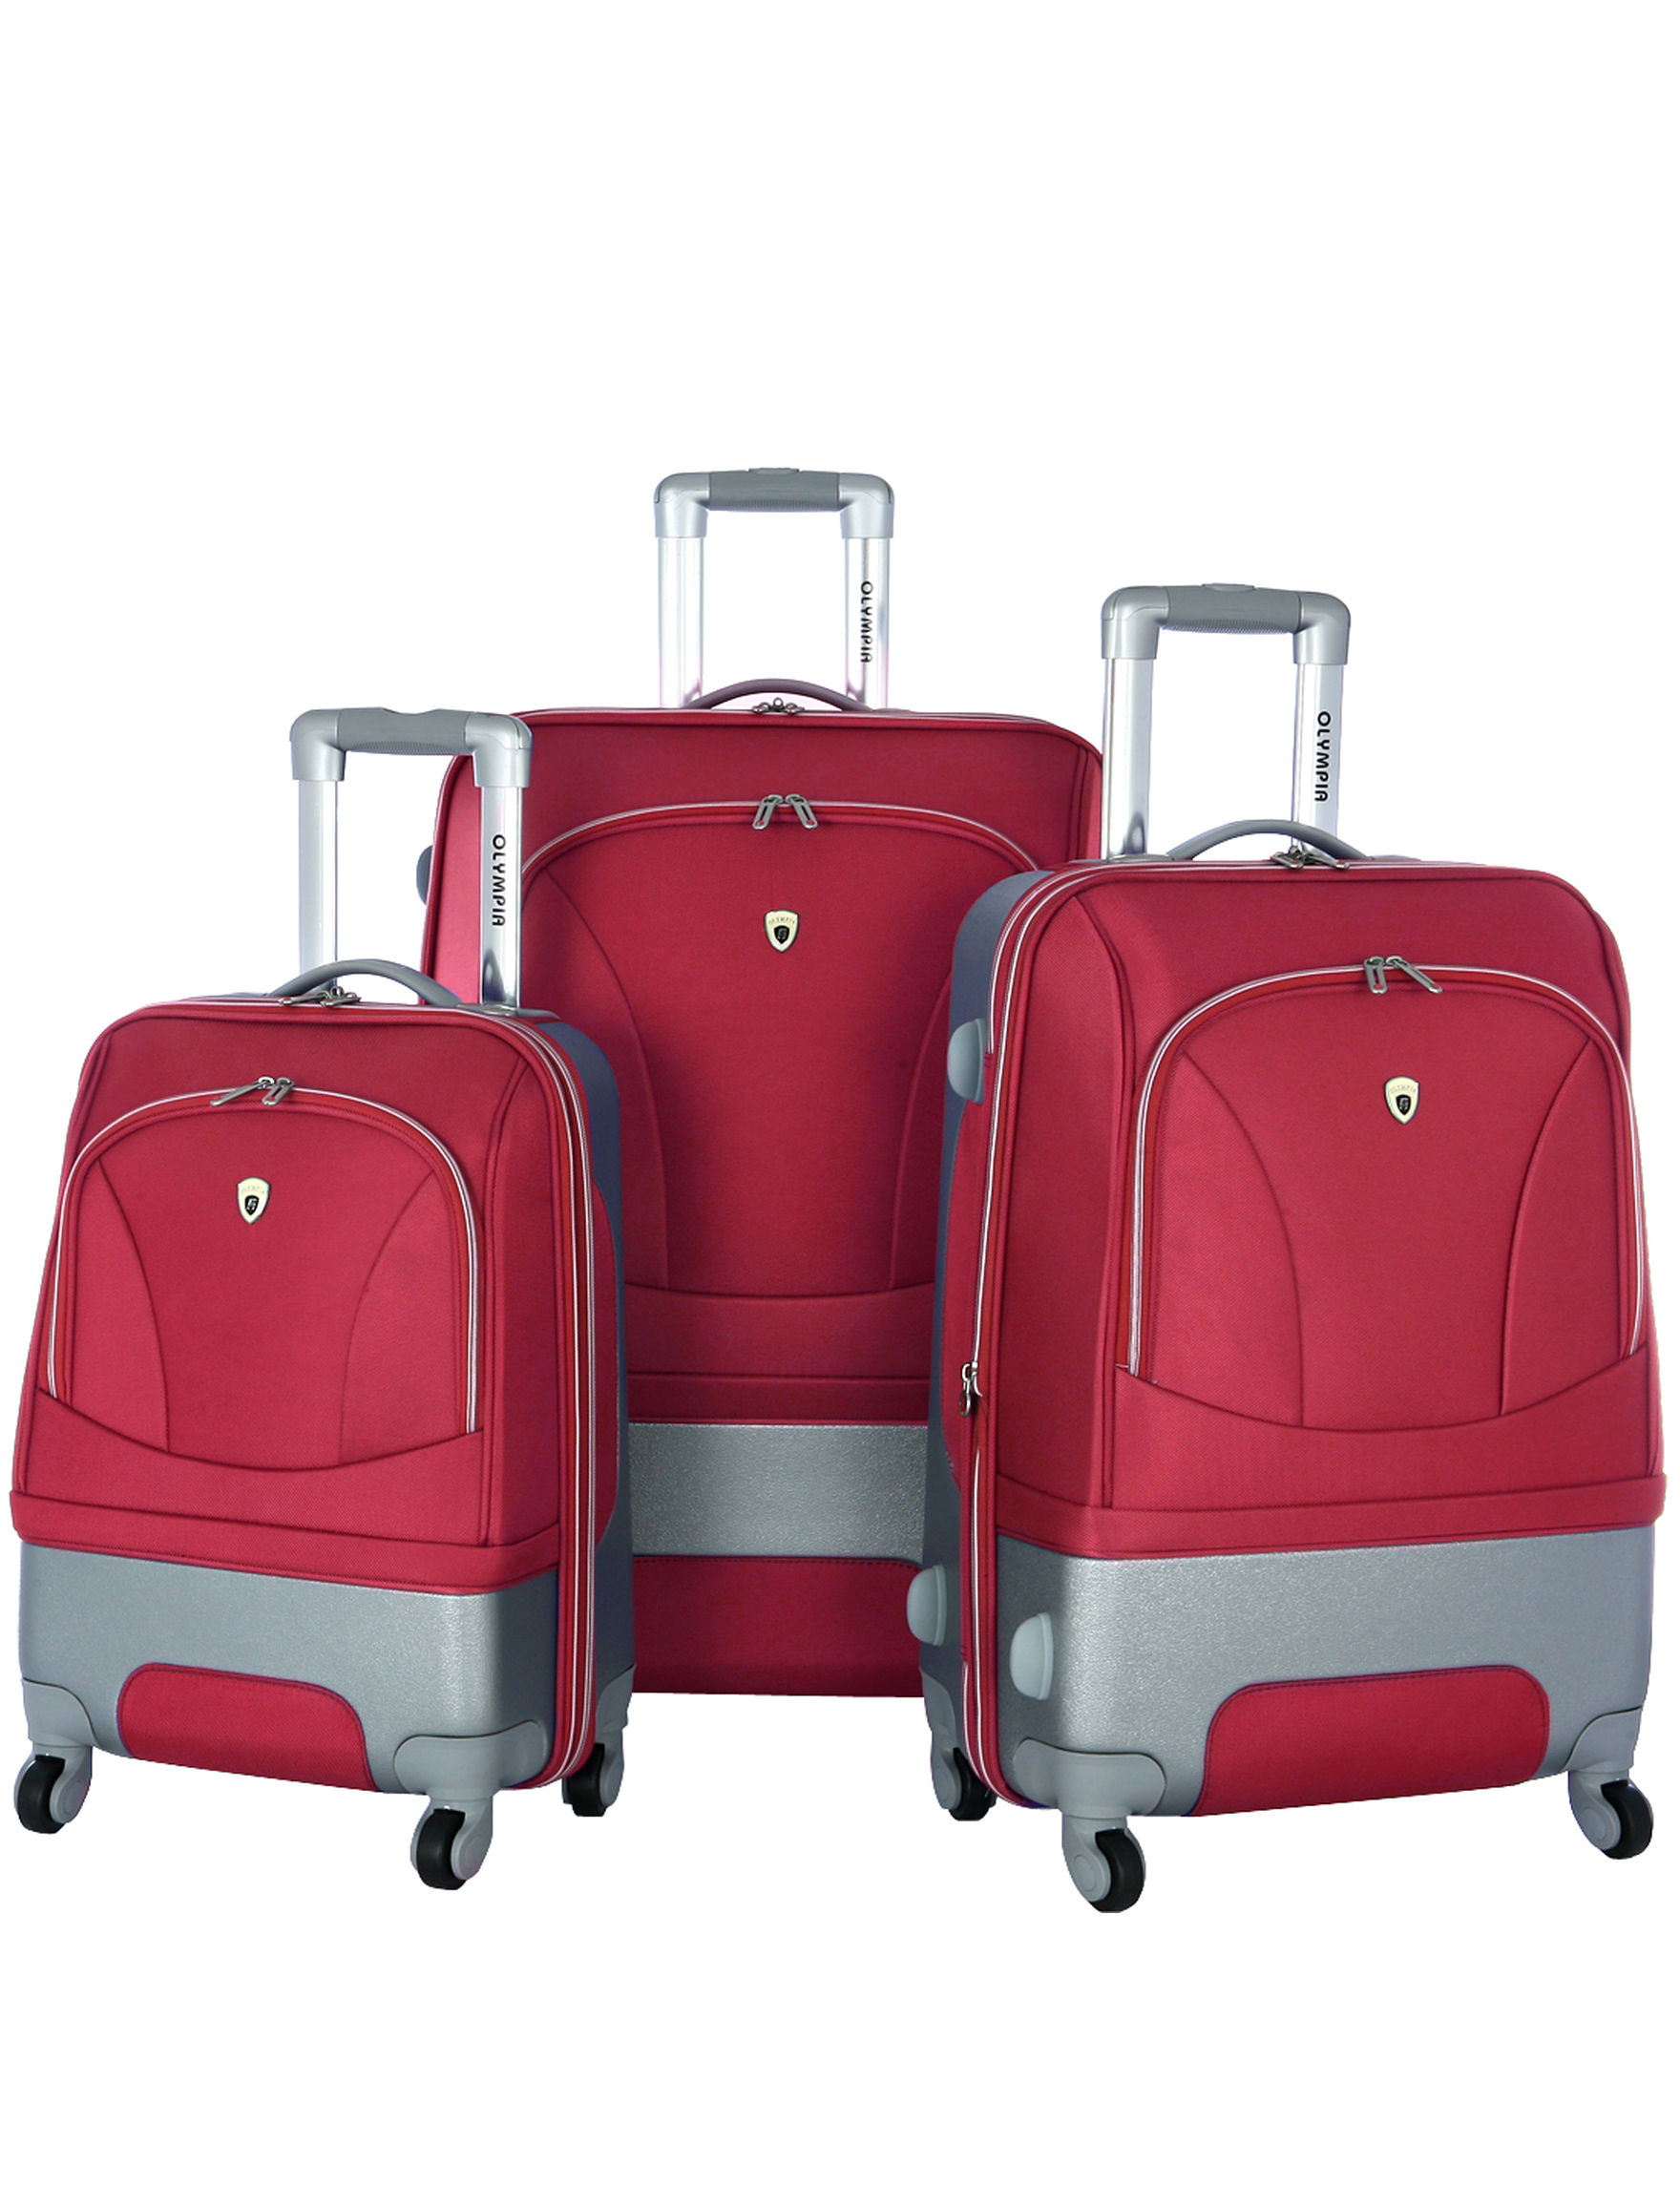 Olympia Red Luggage Sets